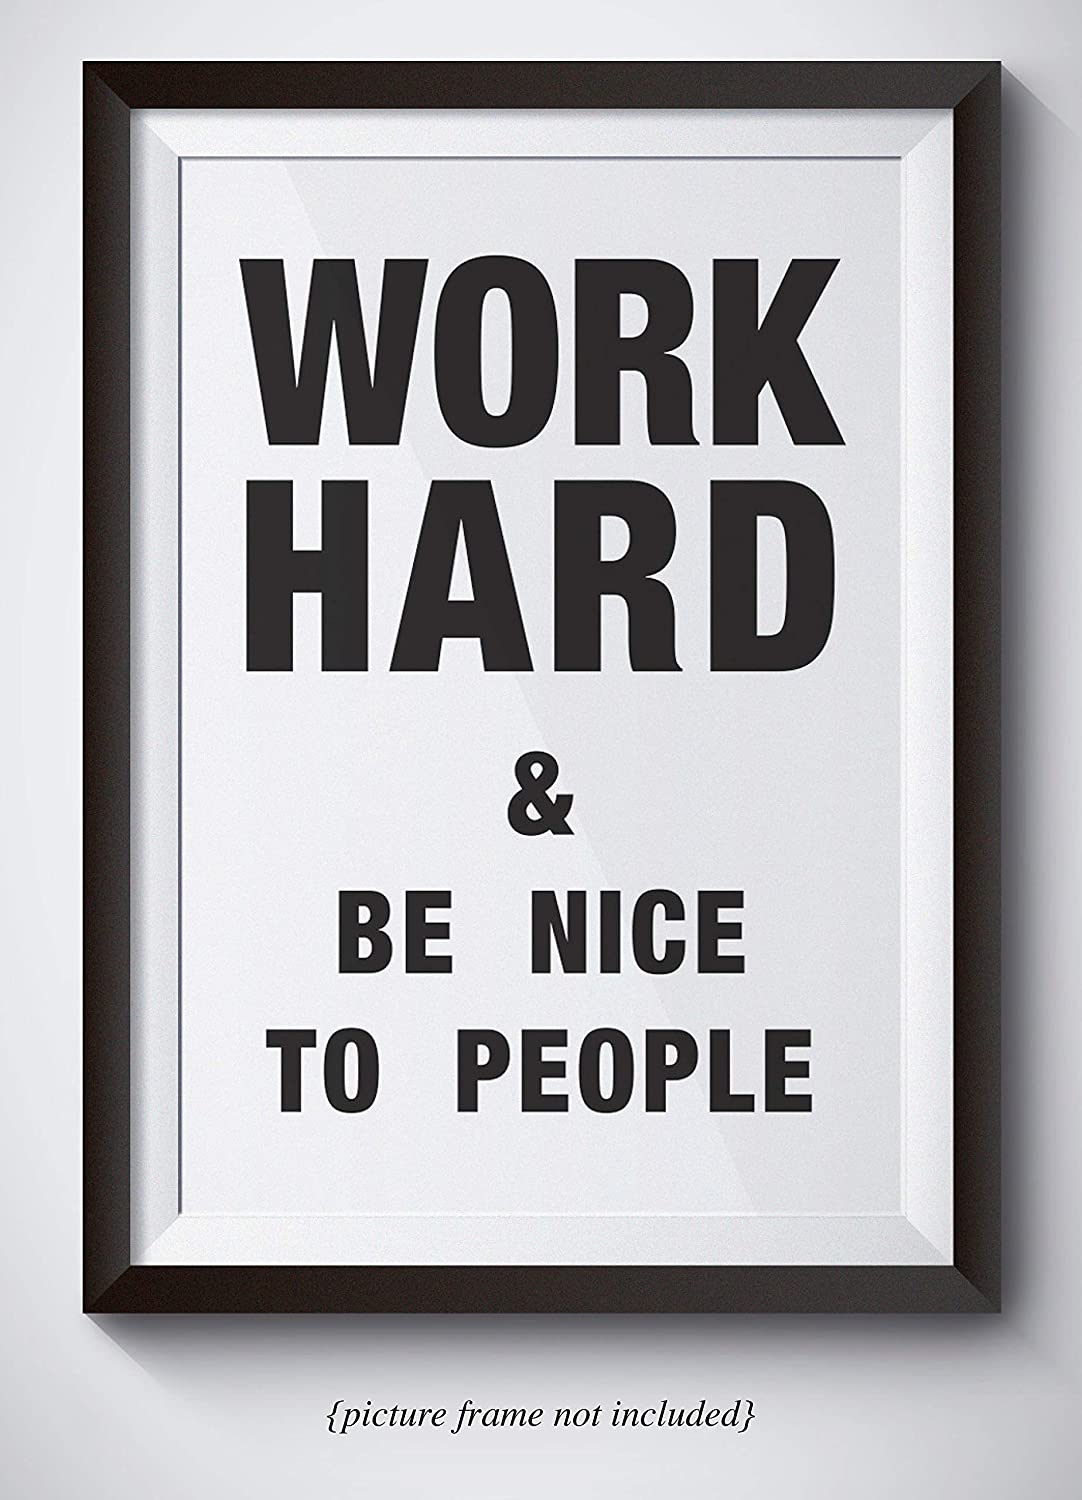 Motivational artwork for office Office Google Amazoncom Work Hard Be Nice To People Motivational Poster 11x14 Unframed Wall Art Office And Cubicle Decor Handmade Amazoncom Amazoncom Work Hard Be Nice To People Motivational Poster